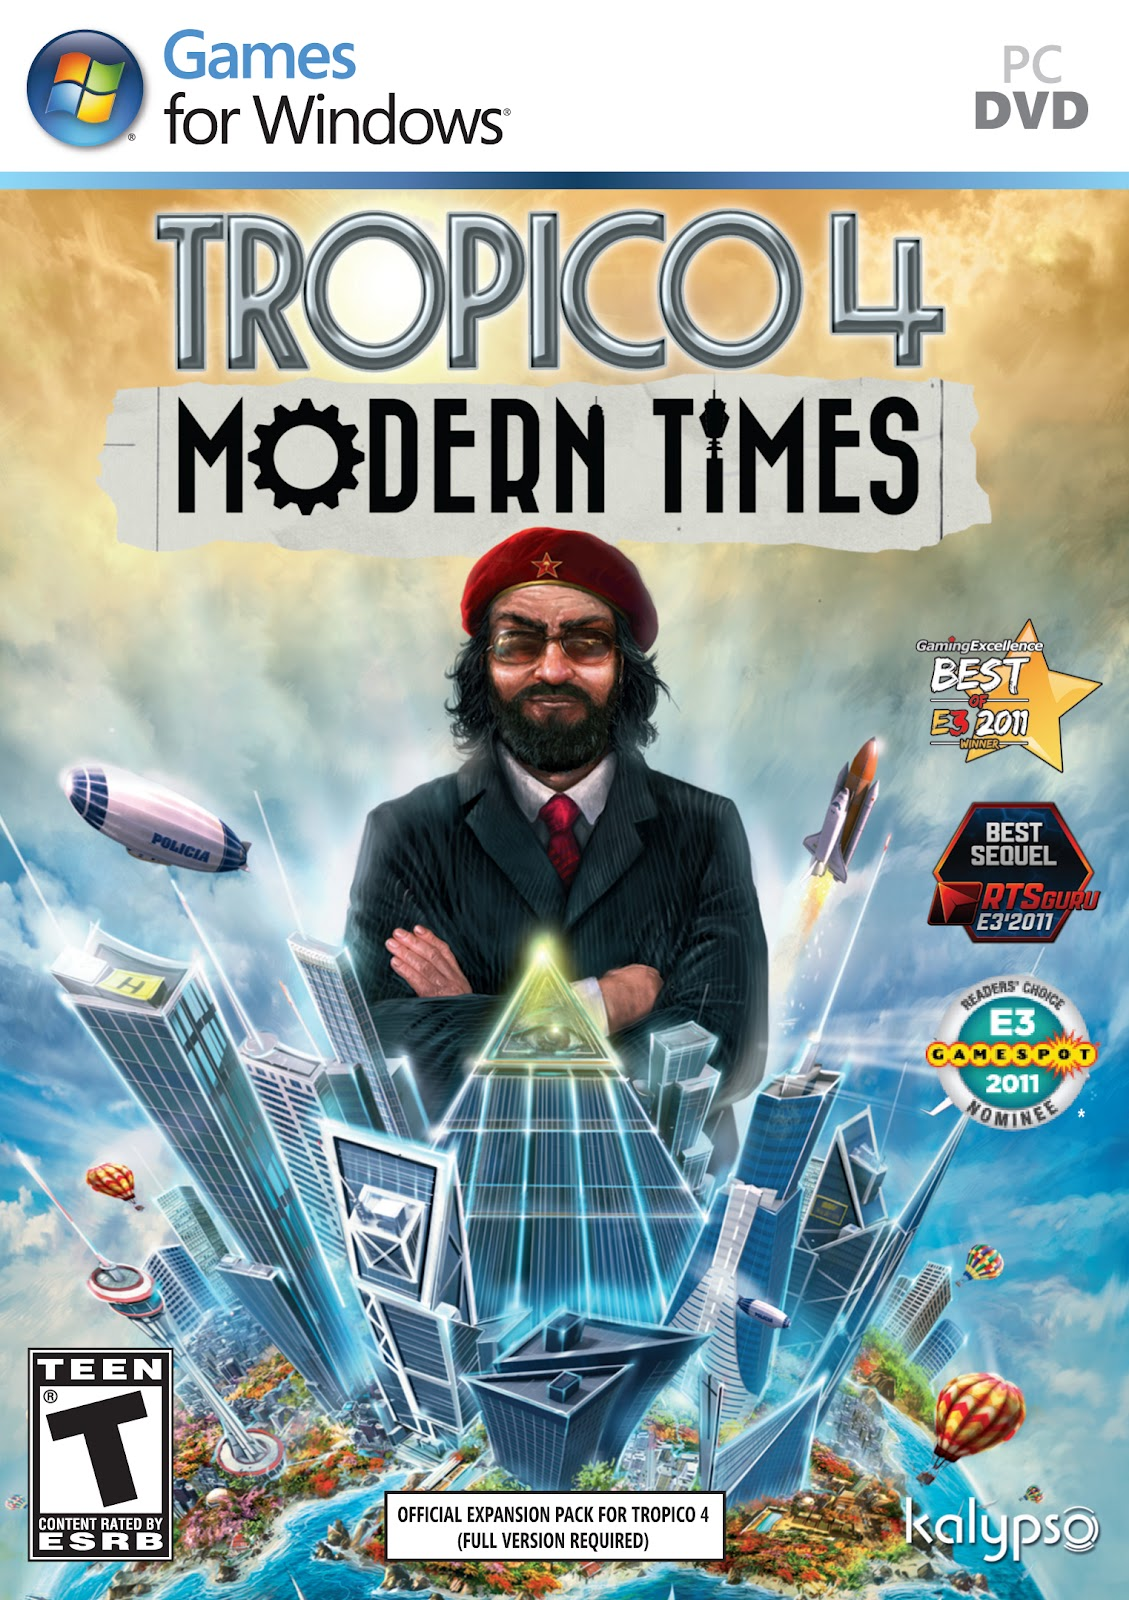 Dream Games: Tropico 4 Modern Times Addon